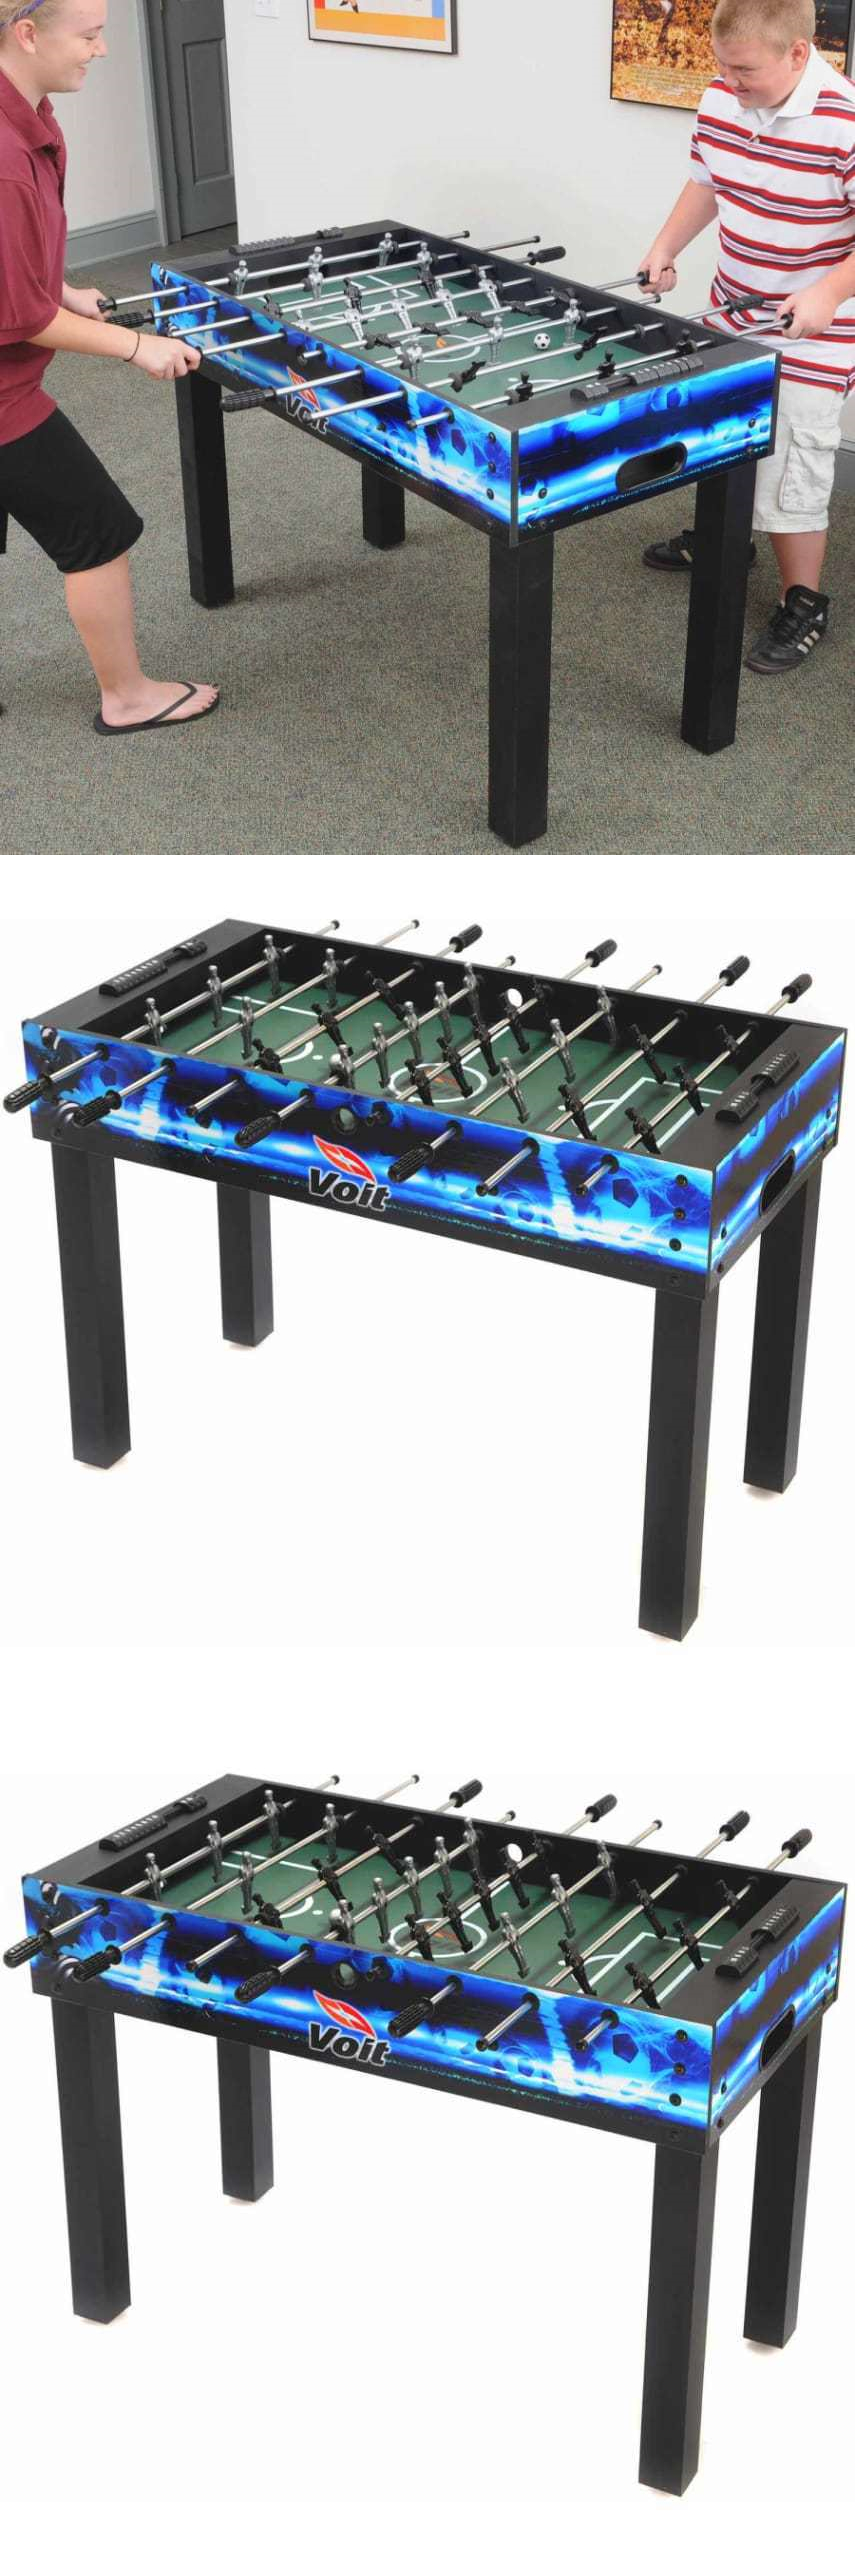 Superb Foosball 36276: Voit Game Table 48 Foosball Table Fast Paced Foosball Game  Room Activity